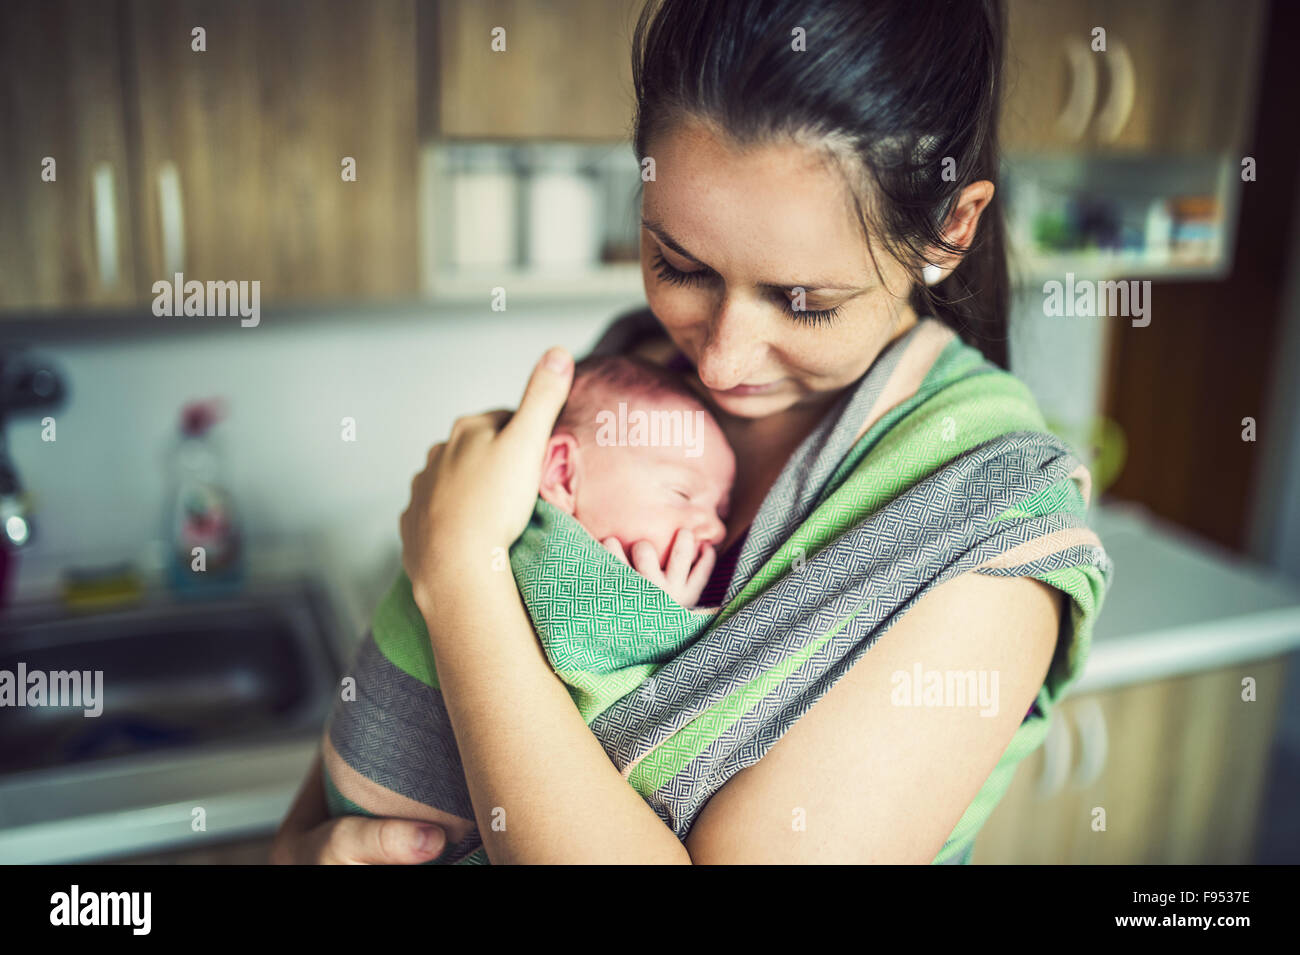 Newborn Baby Hold By Mother In The Baby Wrap Carrier Stock Photo